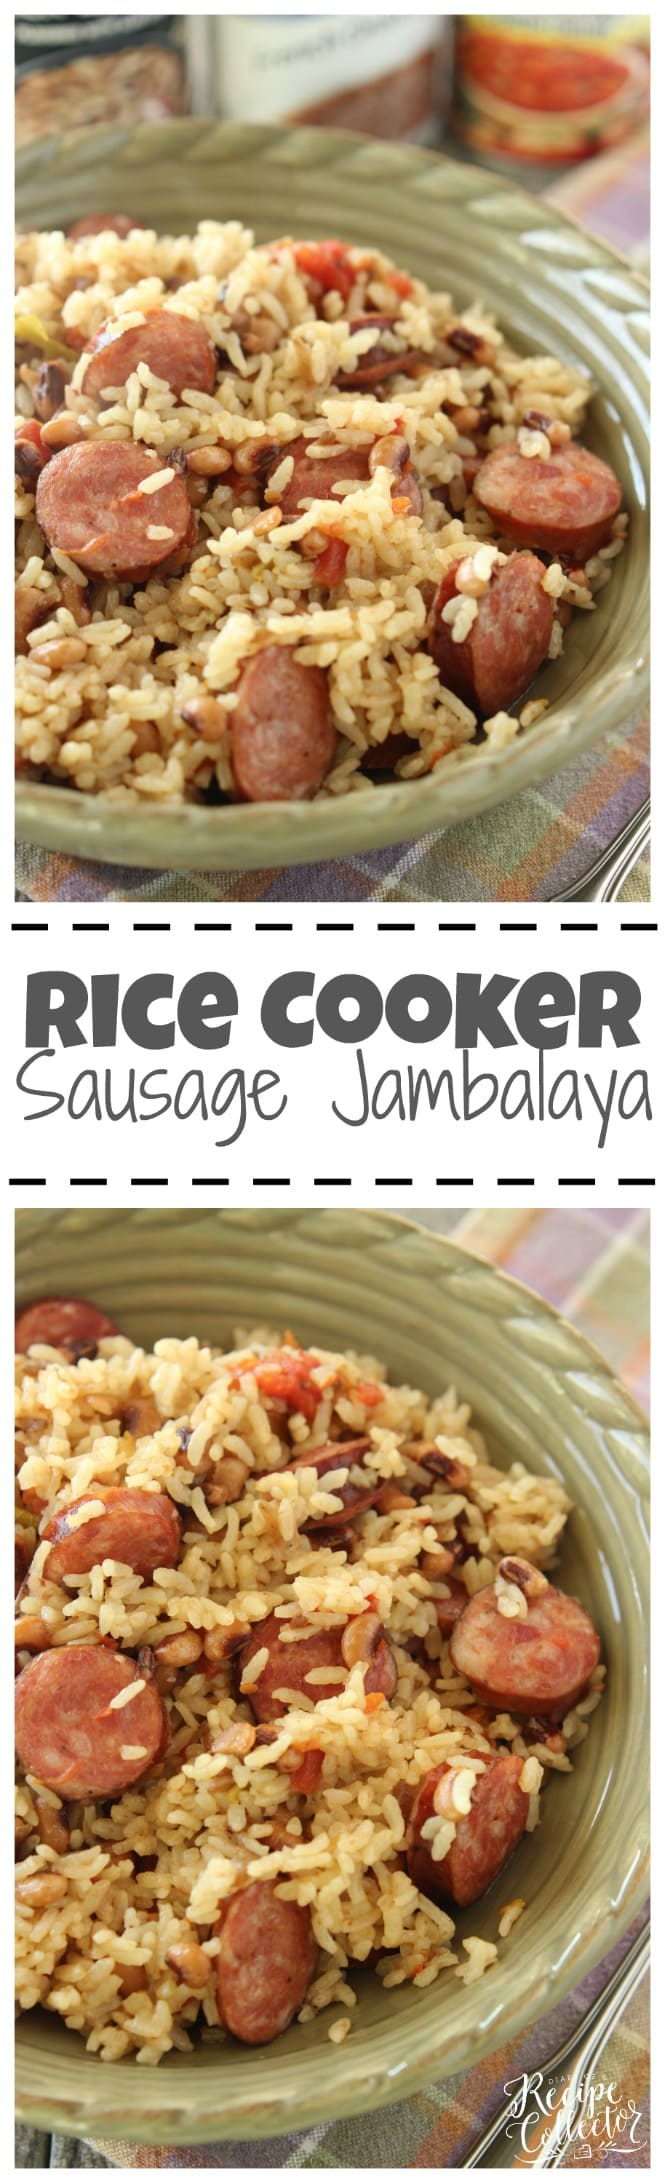 Rice Cooker Sausage Jambalaya - An easy one pot rice dish filled with sausage and black-eyed peas. It only has 5 ingredients!